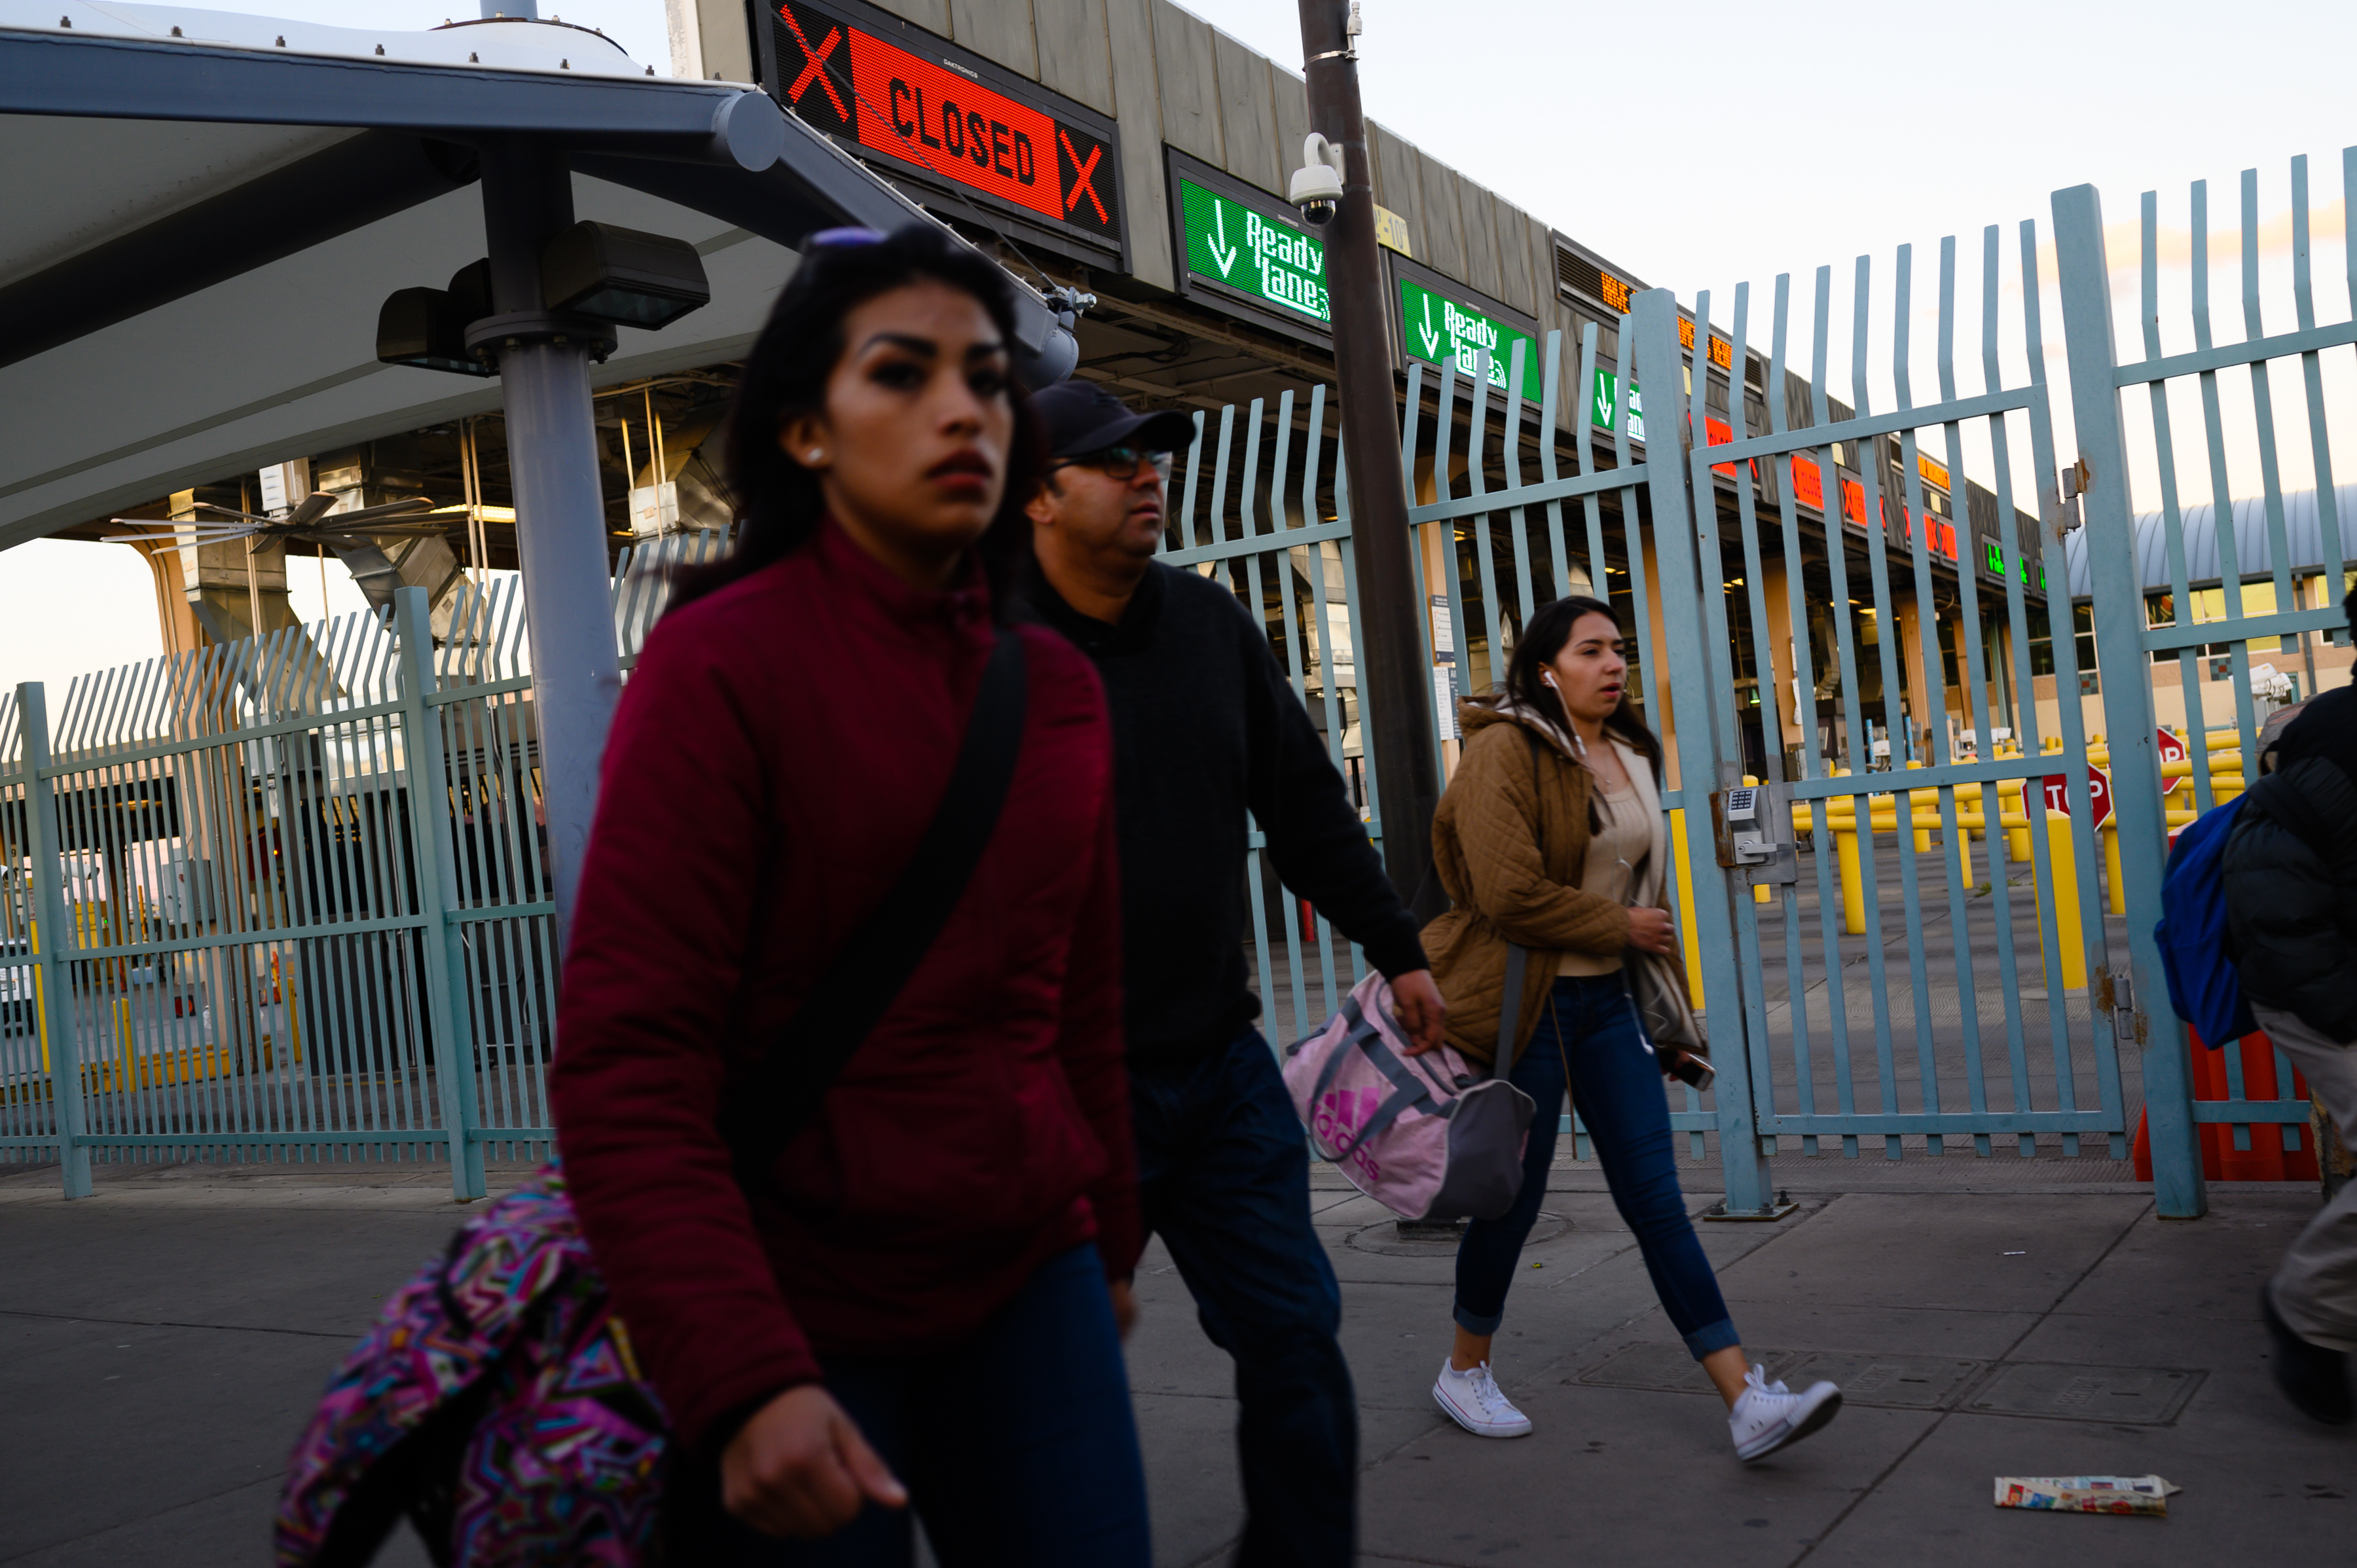 Trump to spotlight El Paso as proof that walls lower crime